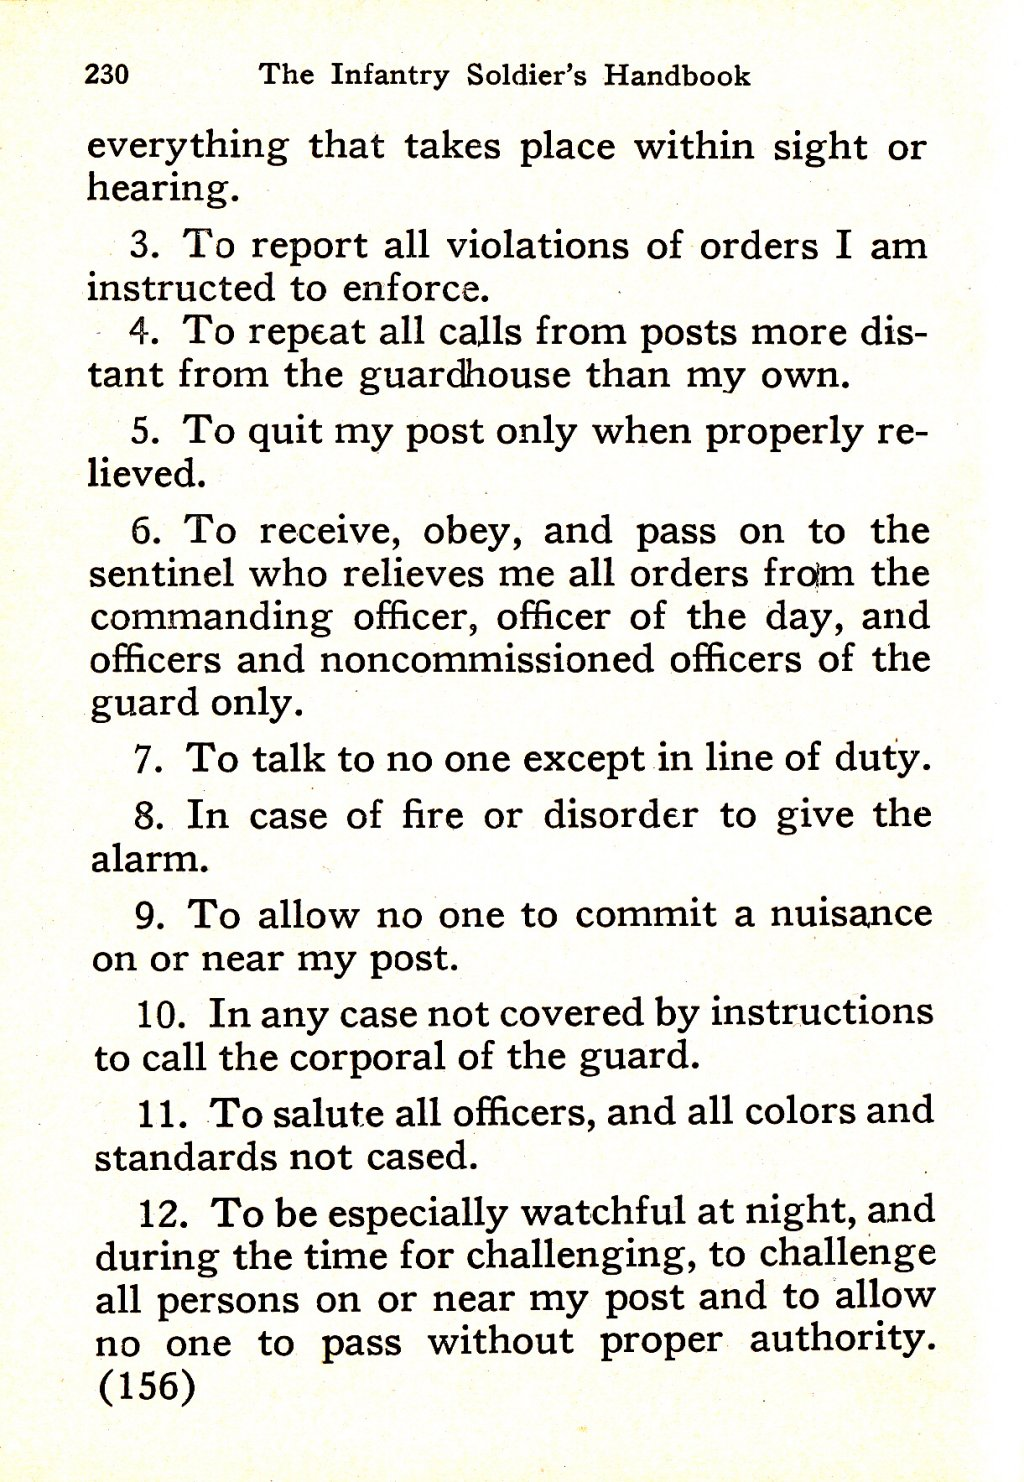 314th Infantry Regiment - Infantry Soldiers Handbook - Waldron - Page 230